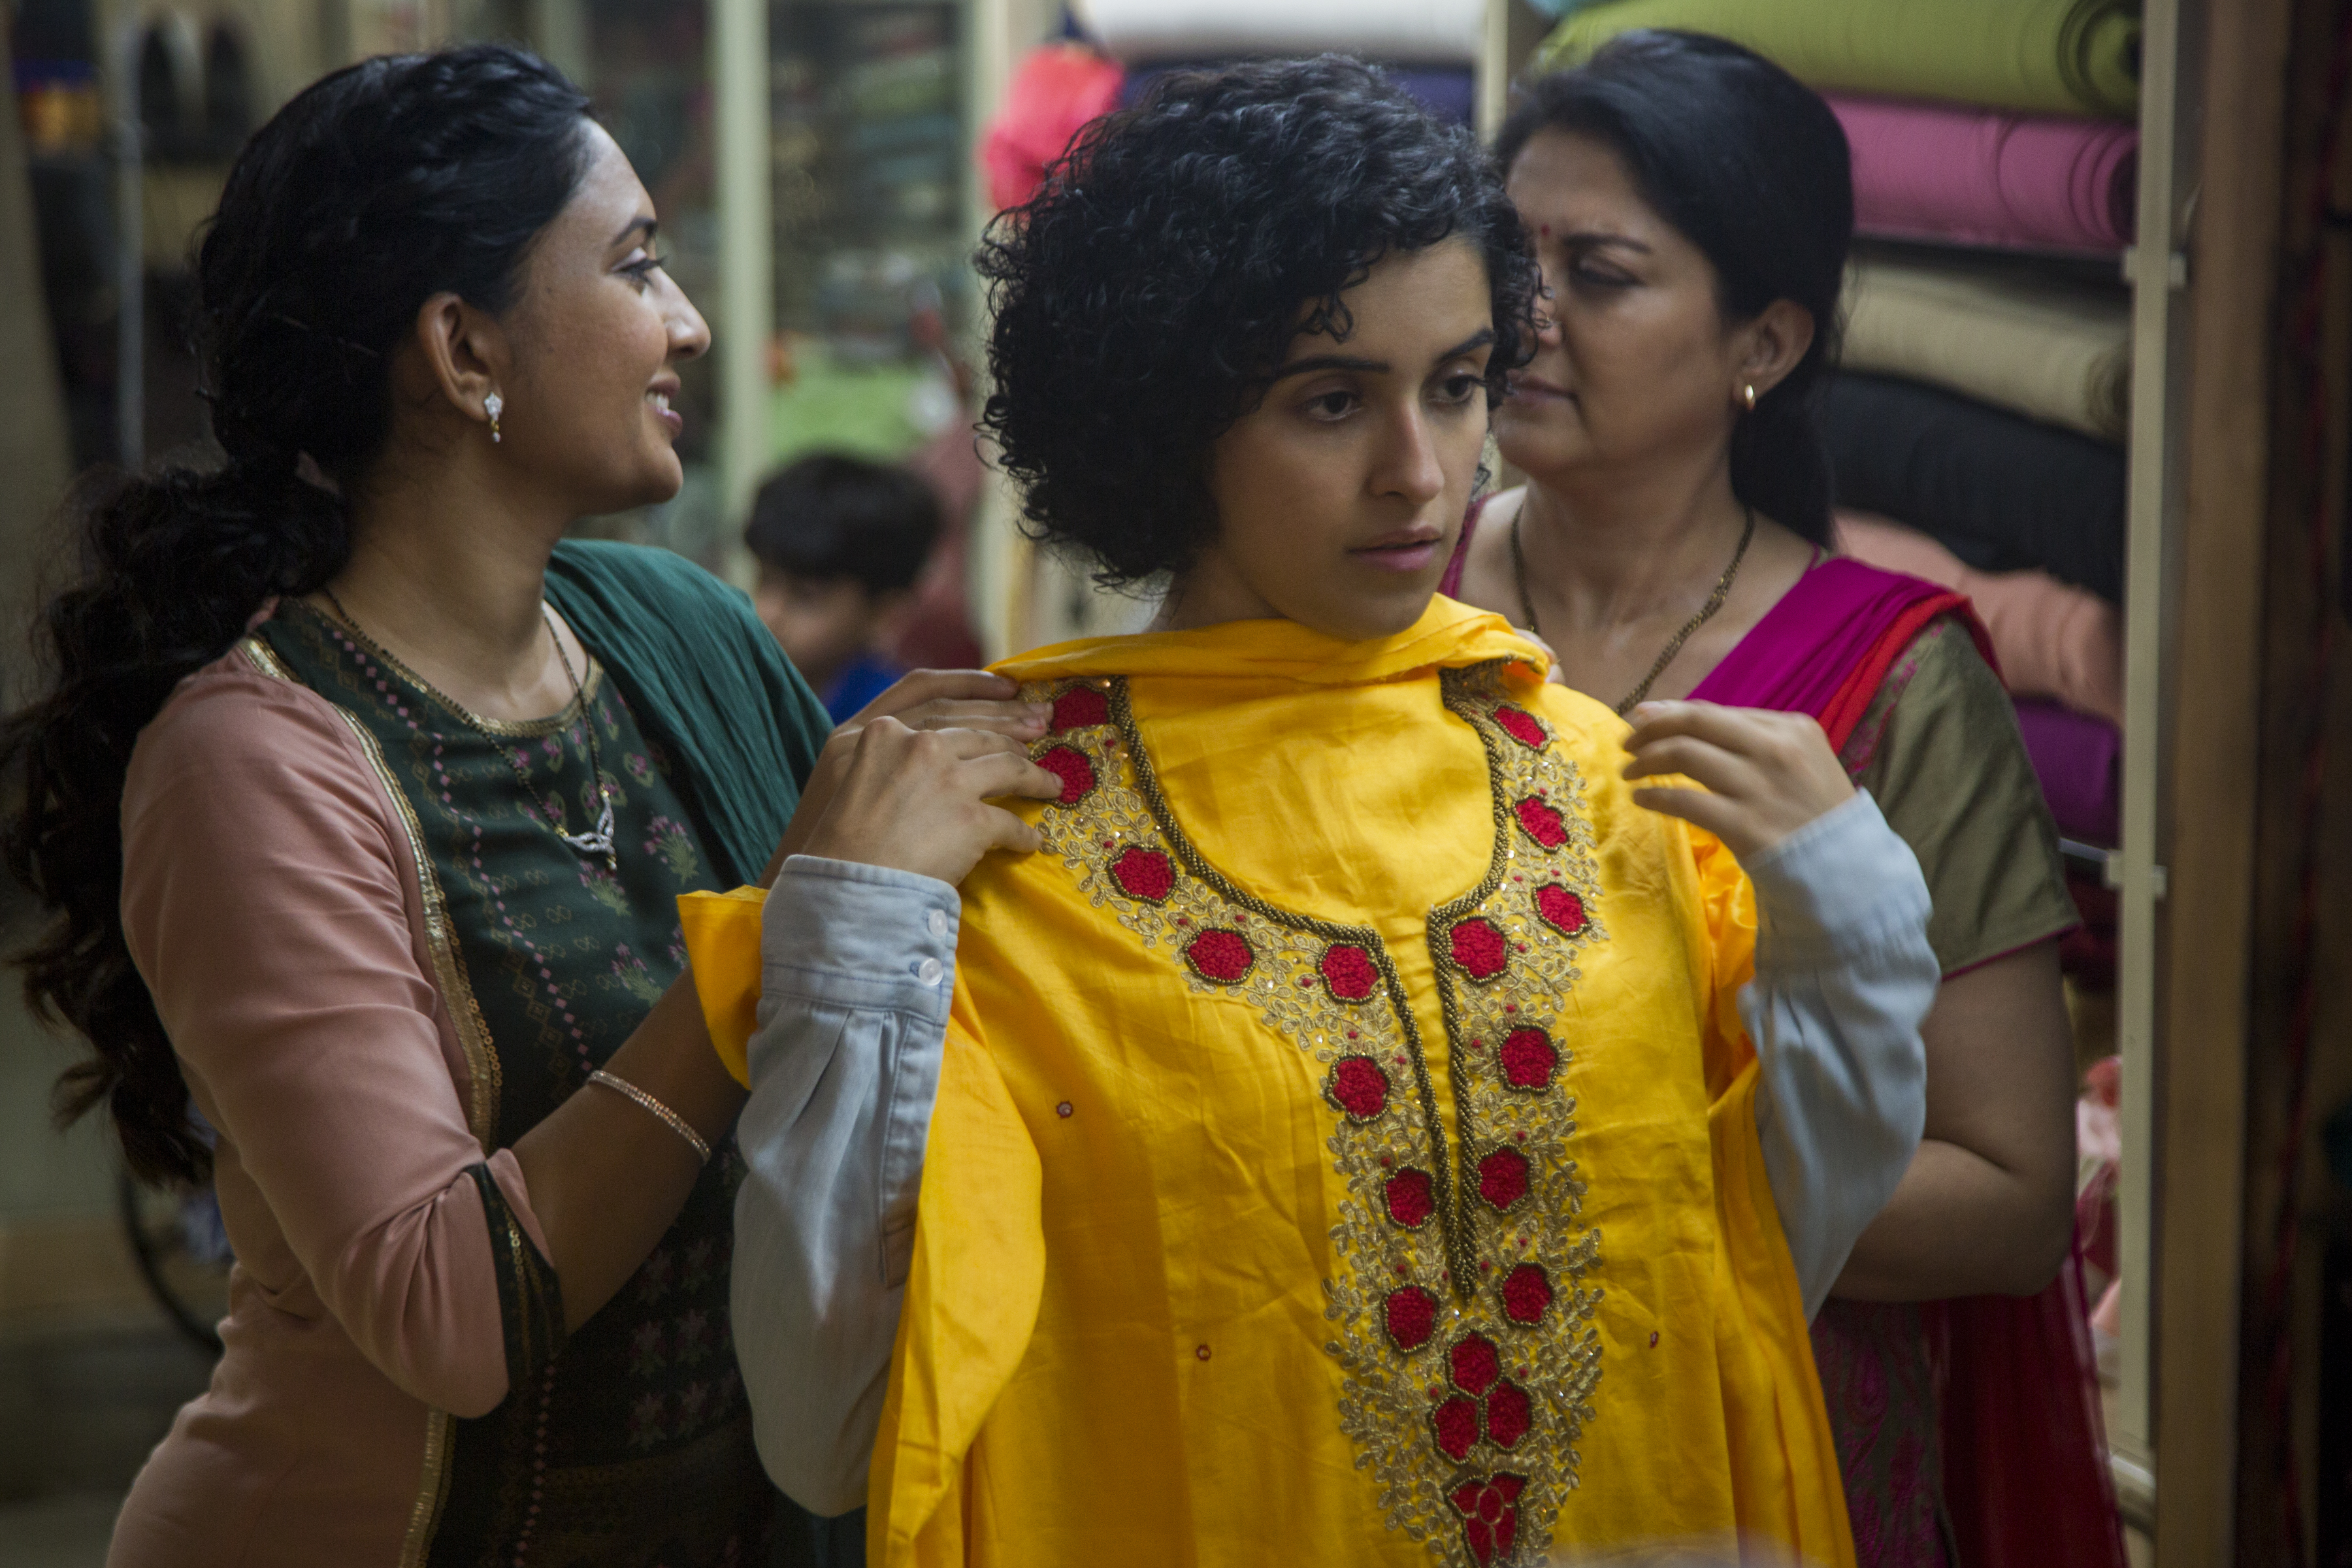 https://www.edfilmfest.org.uk/sites/edfilmfest.org.uk/files/2019/resource-collection/02_Photograph_Photo%20by%20Joe%20D%27Souza.%20%C2%A9%202018%20Tiwari%27s%20Ghost%2C%20LLC.%20All%20Rights%20Reserved.jpg